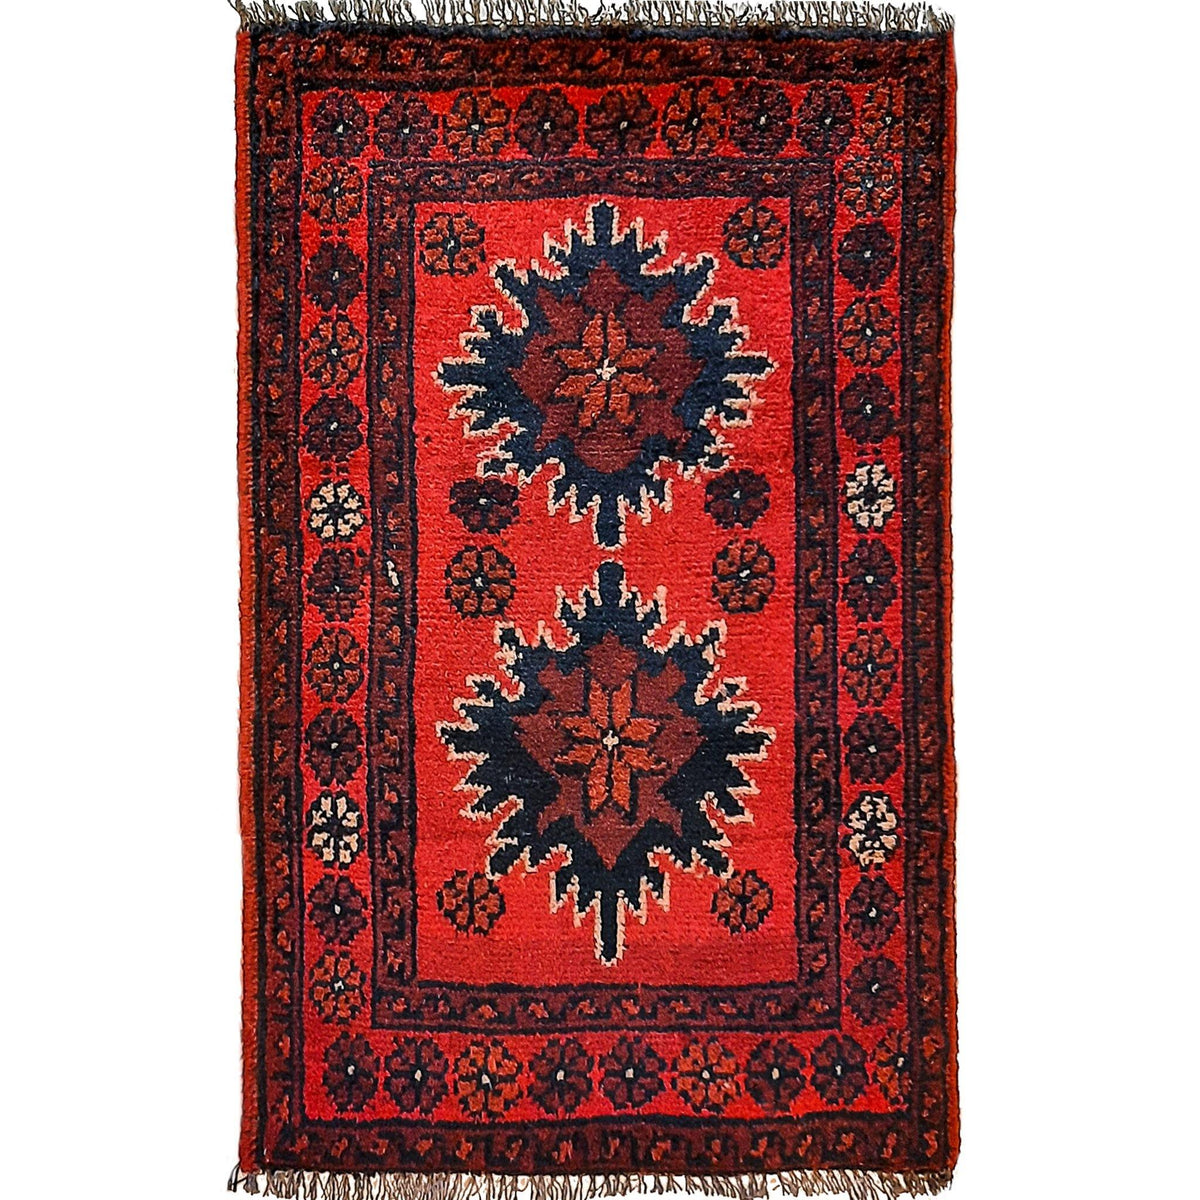 Extra Small Hand-knotted Wool Rug 40cm x 63cm Persian-Rug | House-of-Haghi | NewMarket | Auckland | NZ | Handmade Persian Rugs | Hand Knotted Persian Rugs